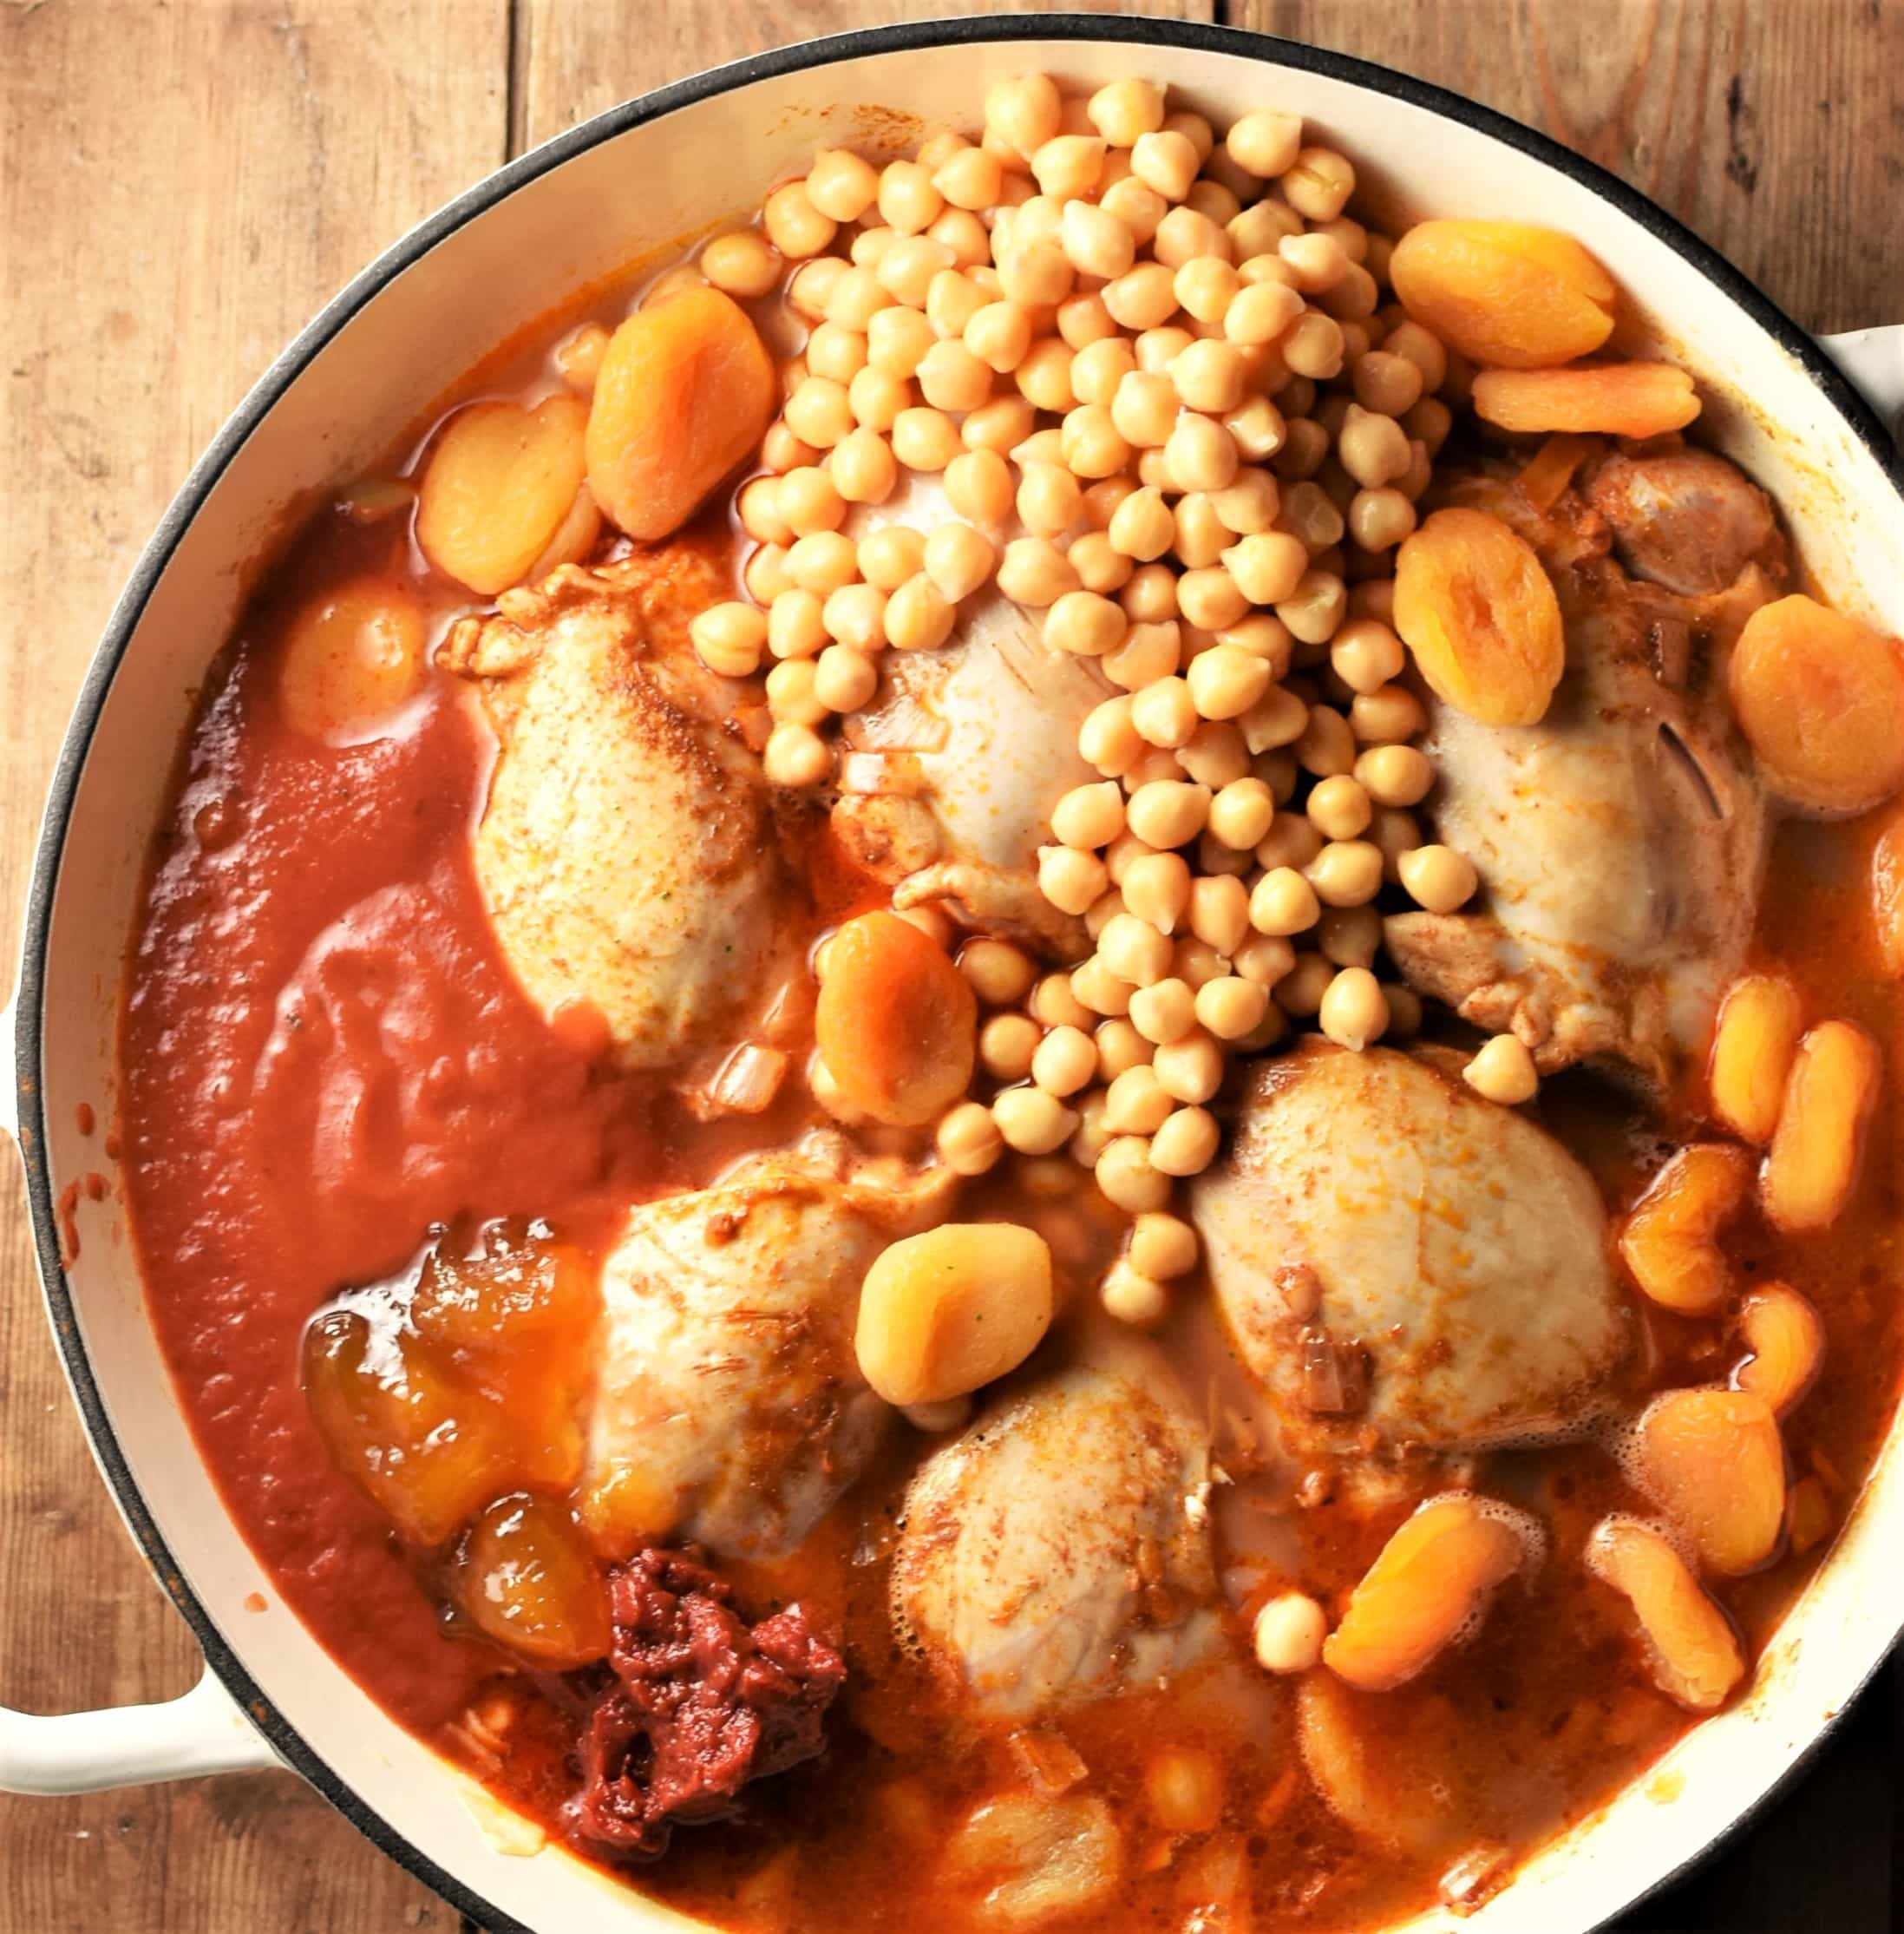 Top down view of chicken, chickpeas, dried apricots in tomato sauce in large shallow dish.